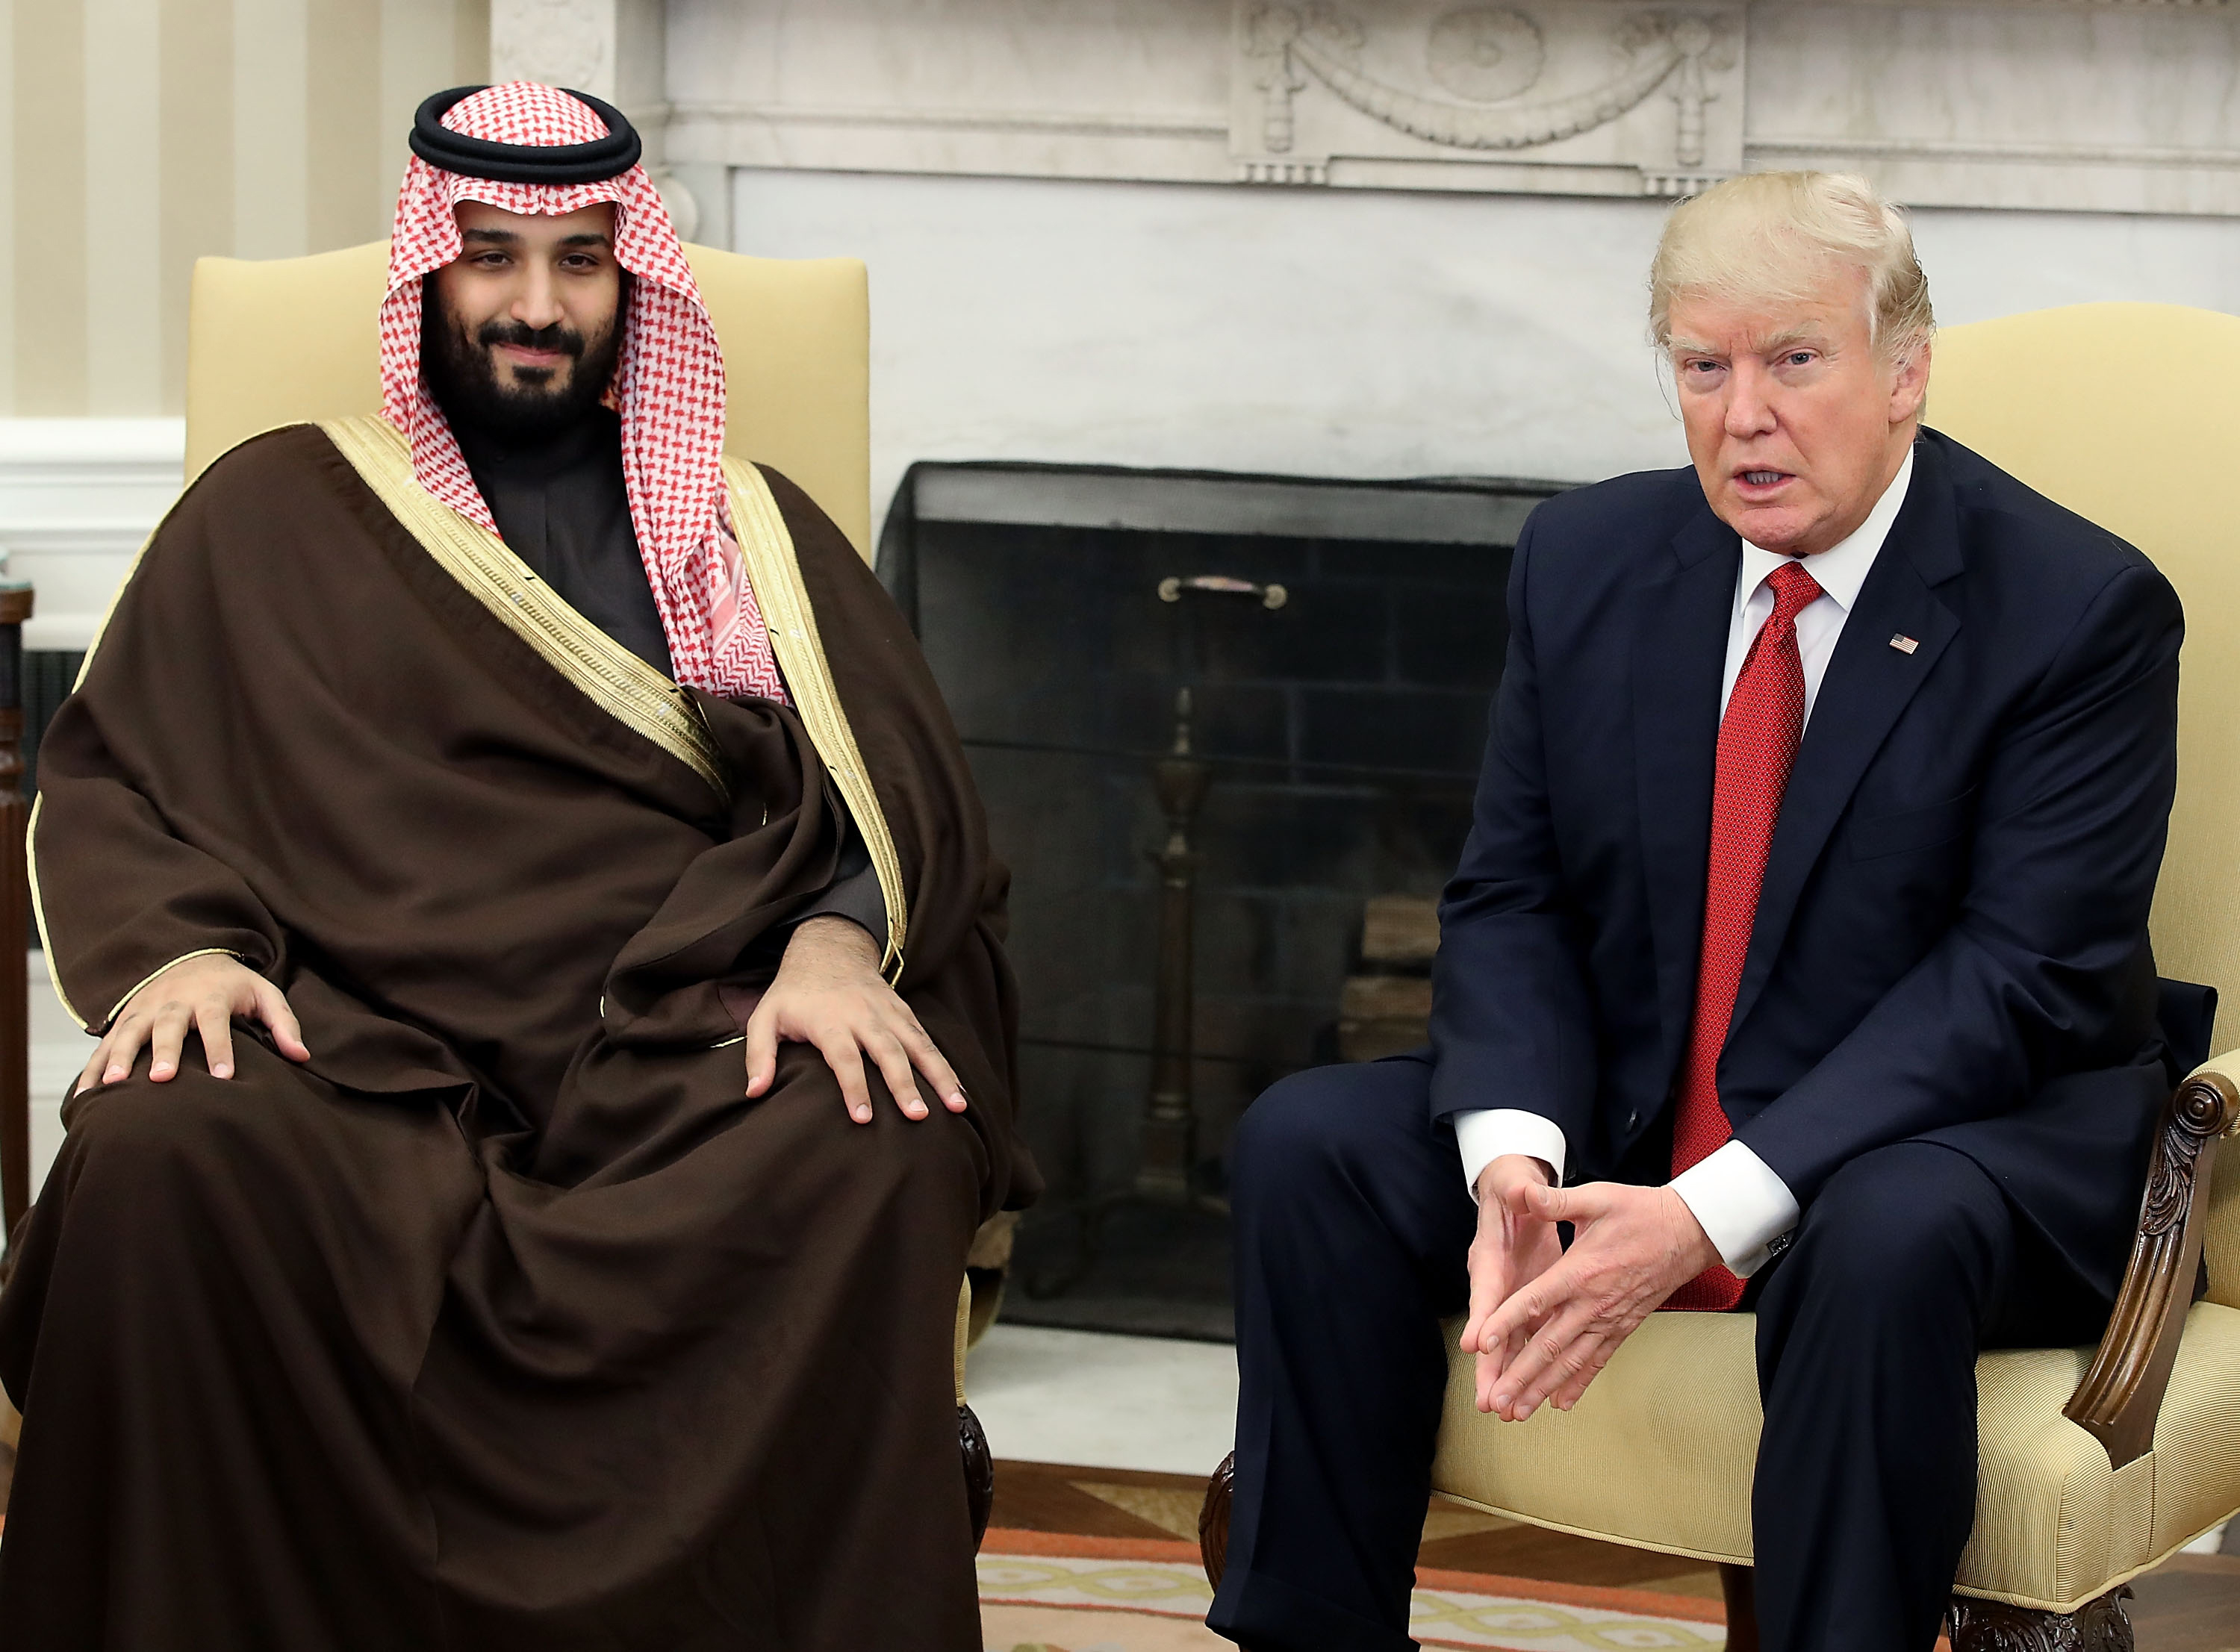 U.S. President Donald Trump (R) meets with Mohammed bin Salman, Deputy Crown Prince and Minister of Defense of the Kingdom of Saudi Arabia, in the Oval Office at the White House, March 14, 2017 in Washington, DC.